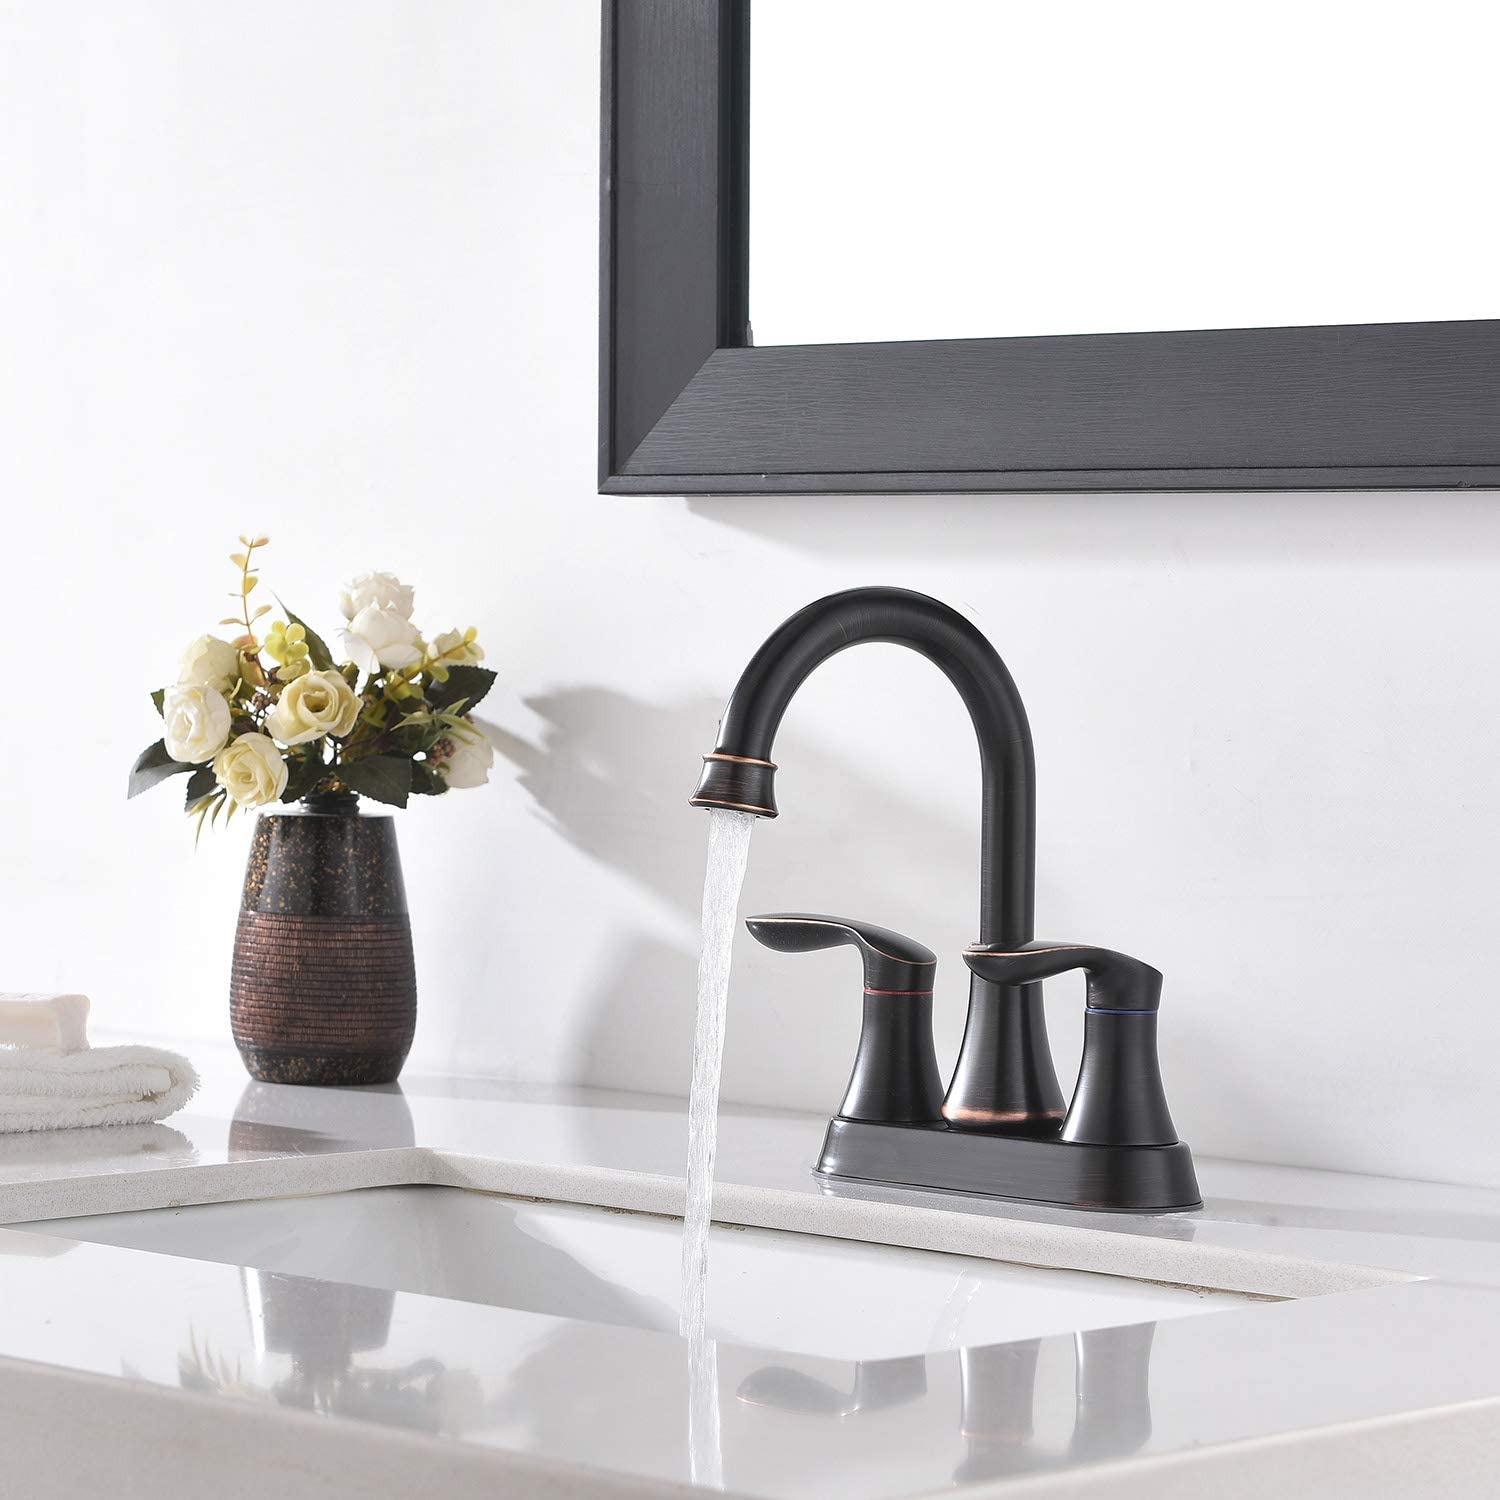 Friho Lead-Free Modern Commercial Two Handle Oil Rubbed Bronze Bathroom Faucet, Bathroom Vanity Sink Faucets with Drain Stopper and Water Hoses - -